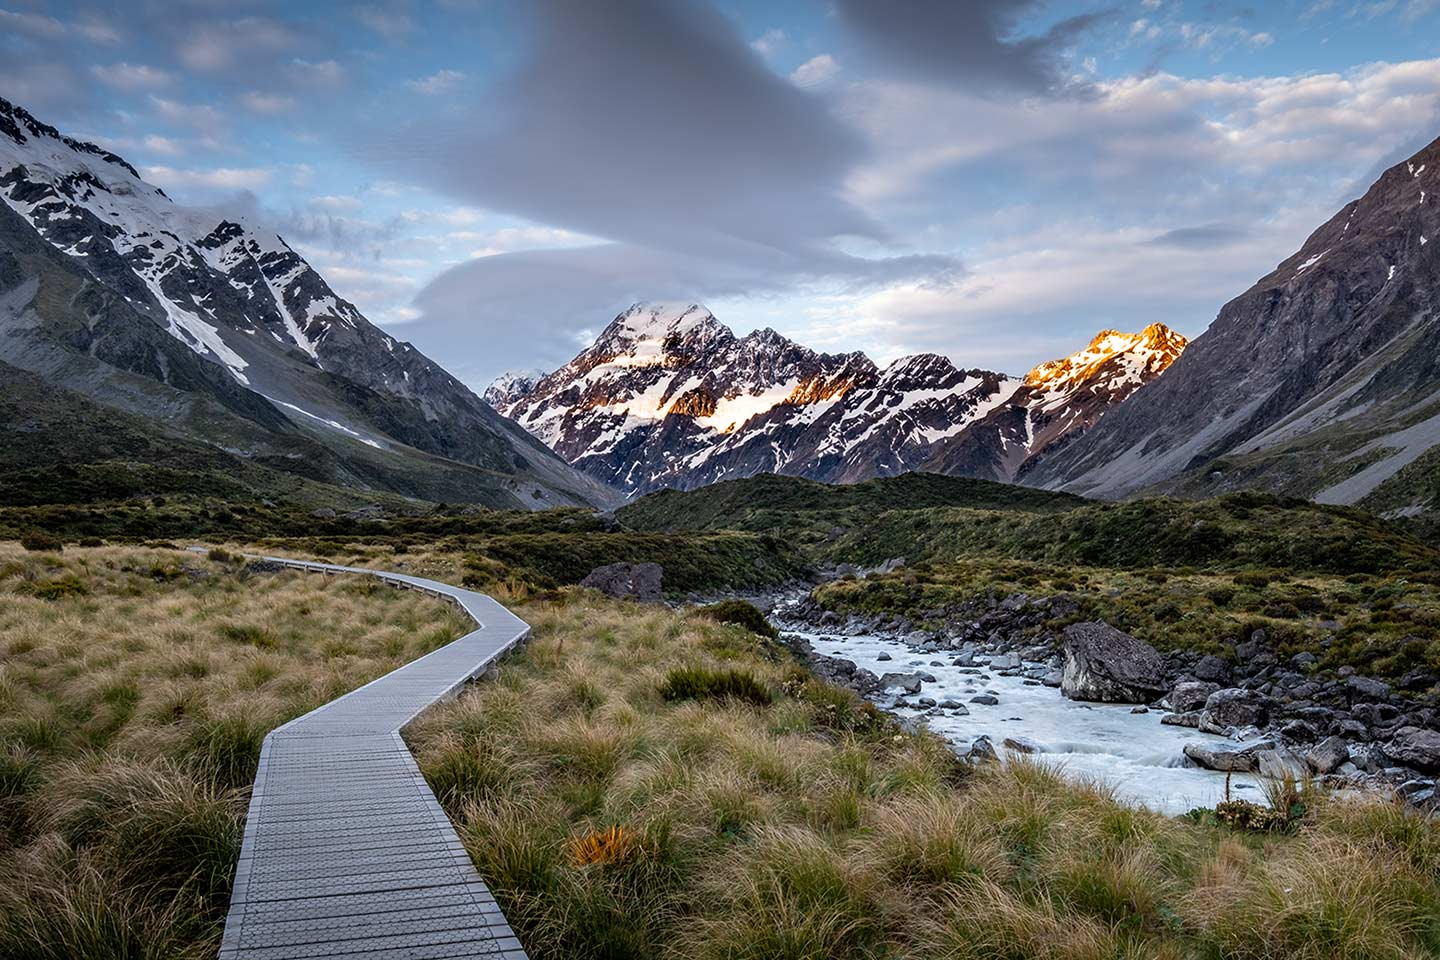 A photo of a New Zealand landscape, in the photo we see a wooden path leading towards a beautiful set of mountains. With the use of travel photography courses photographers can learn to take beautiful photos like this.